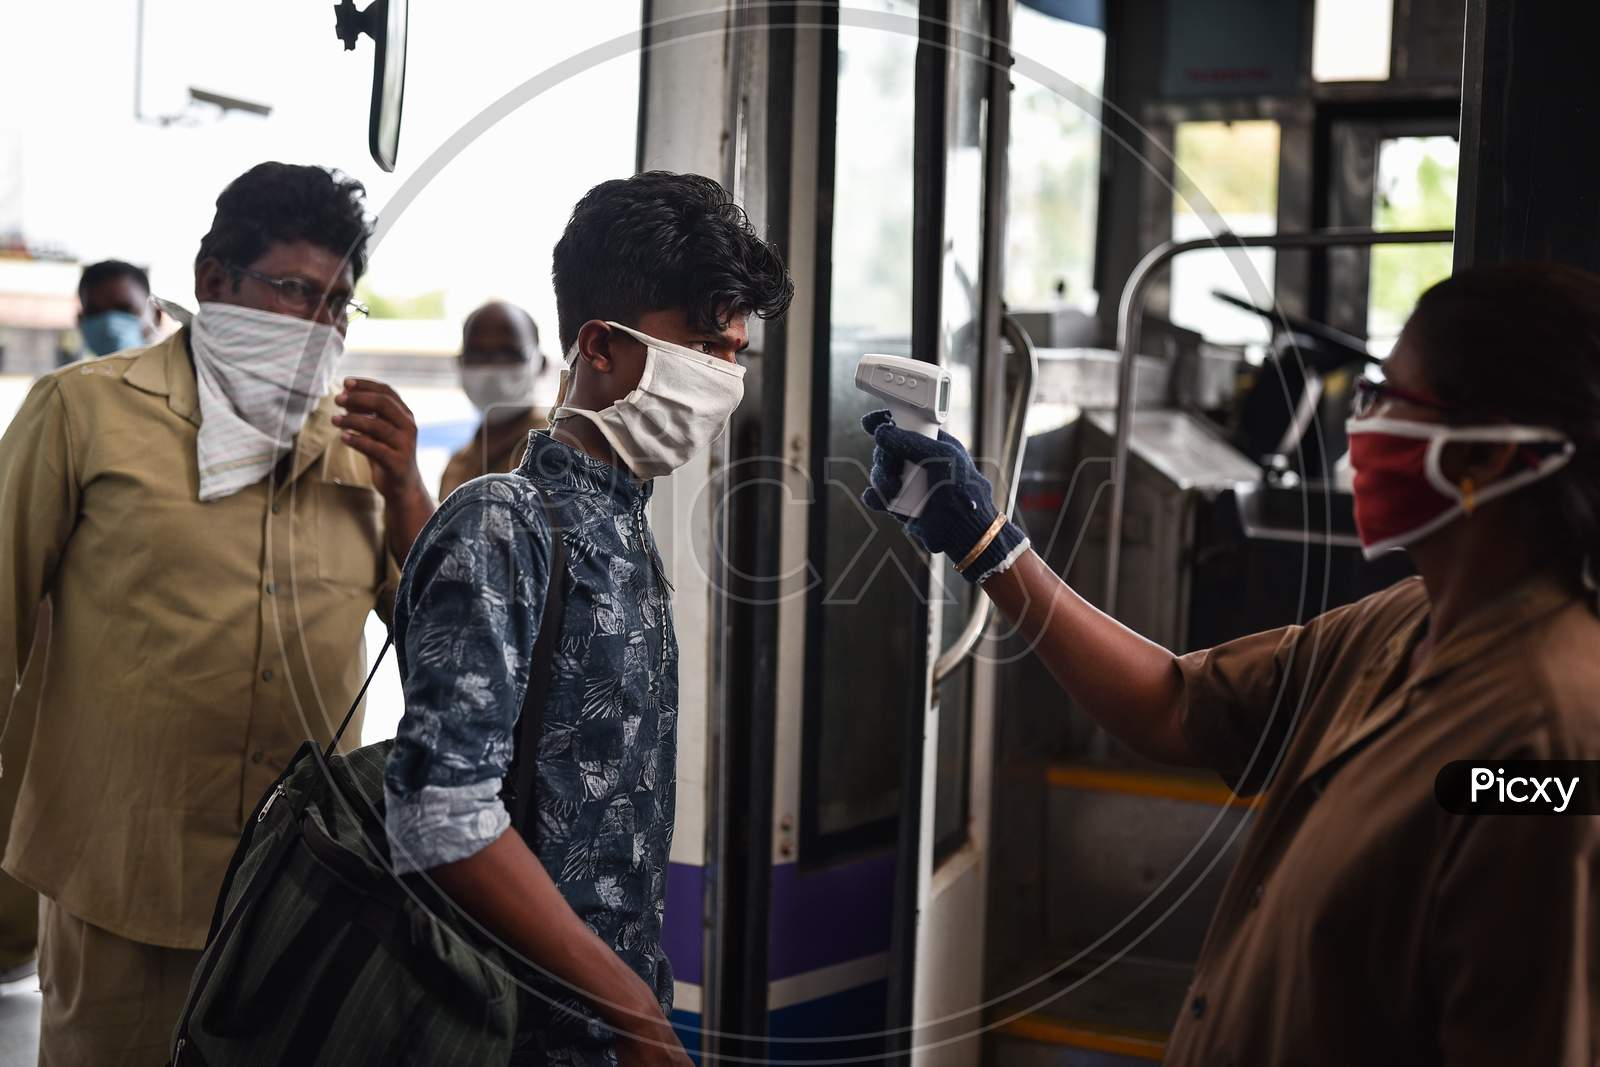 An Apsrtc Worker Conducts Thermal Screening Of A Passenger Before Boarding A Bus, At Pandit Nehru Bus Station, During The Ongoing Coronavirus Lockdown, In Vijayawada.